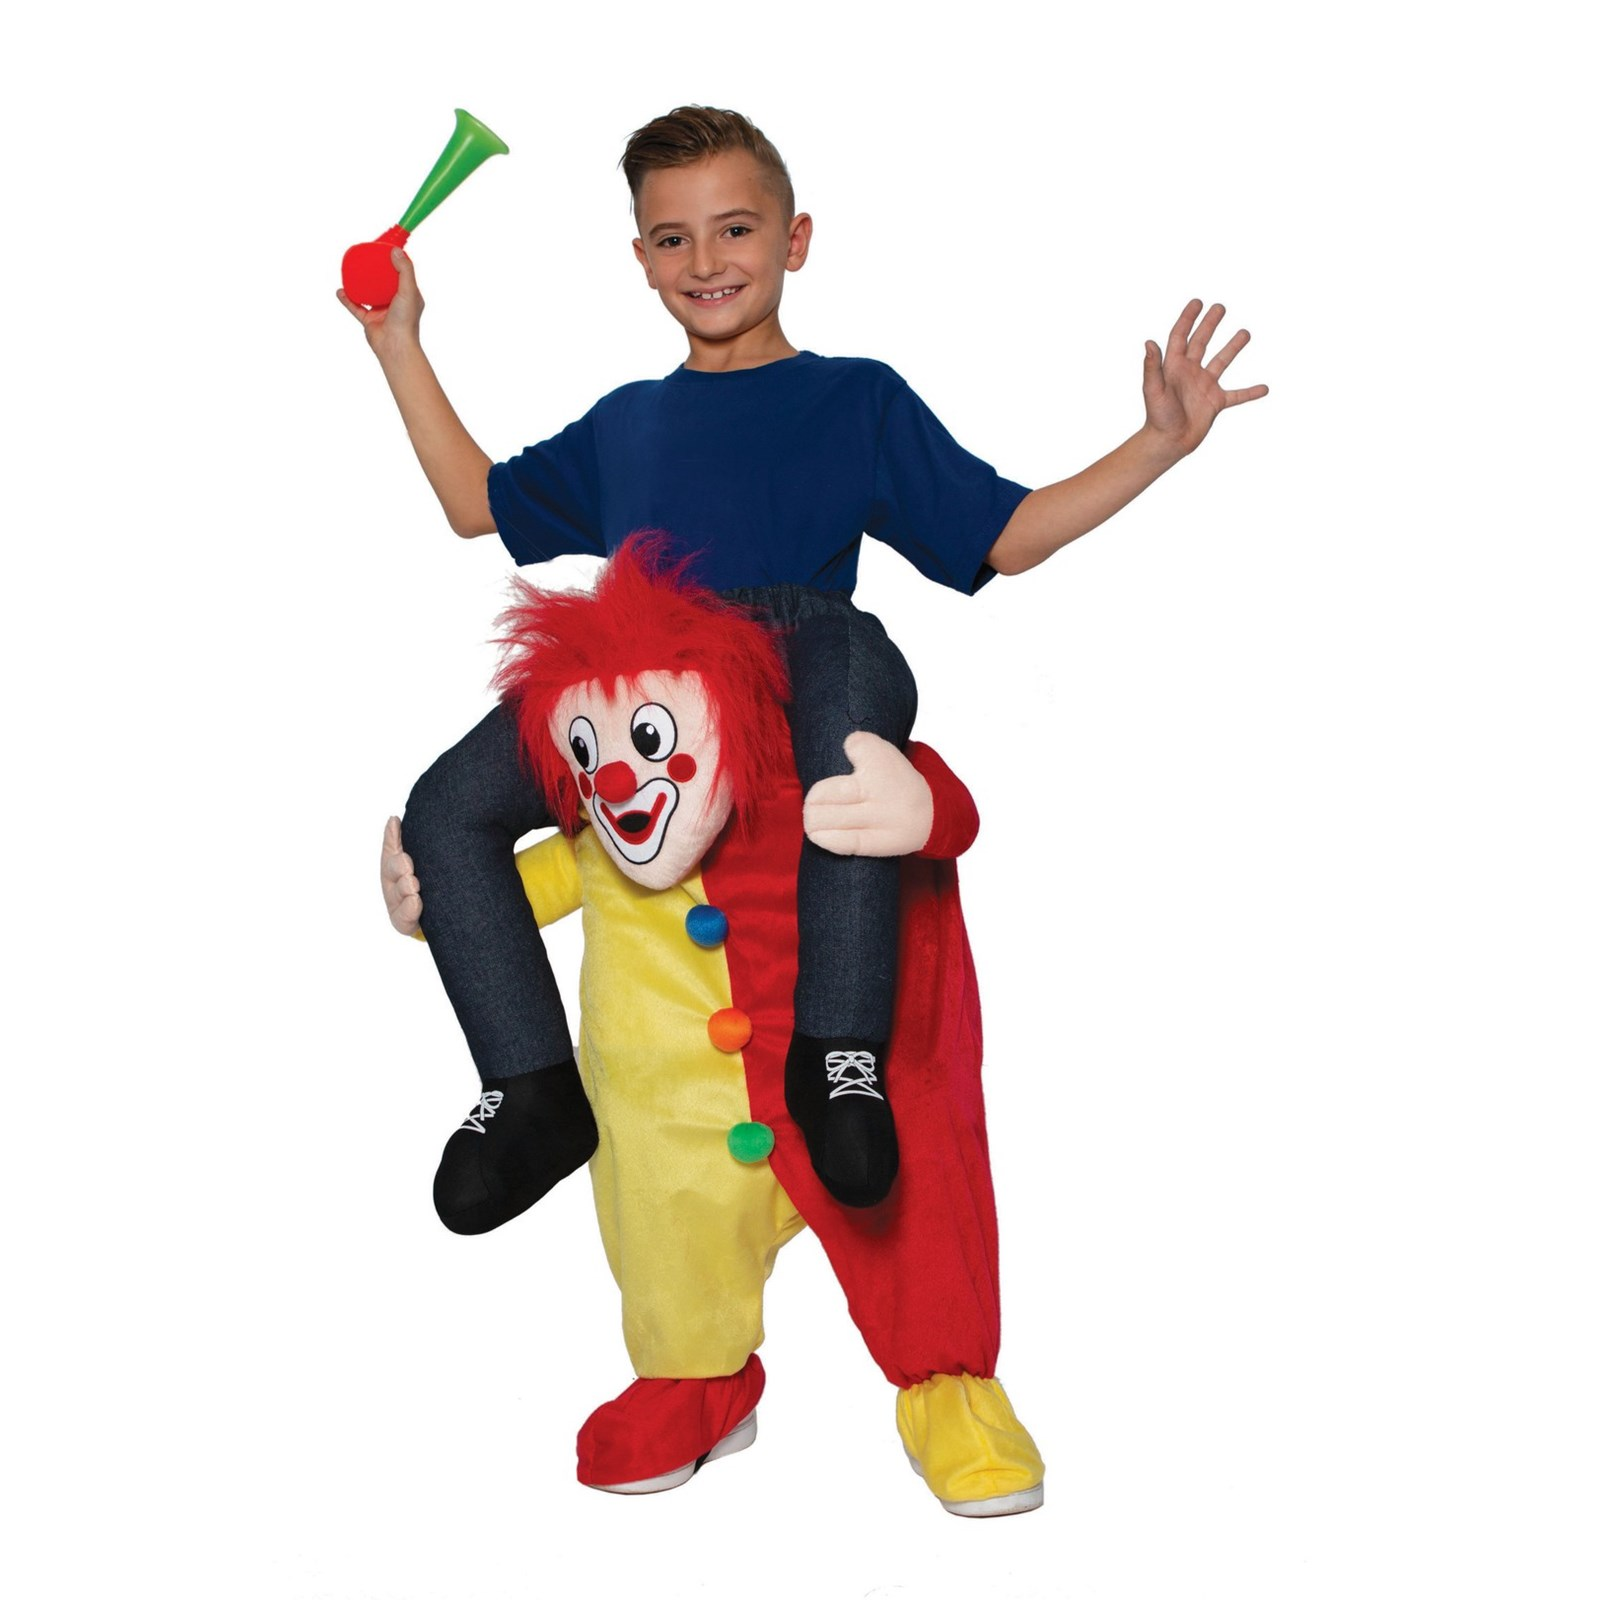 FUN RIDE-ON CLOWN COSTUME FOR KIDS